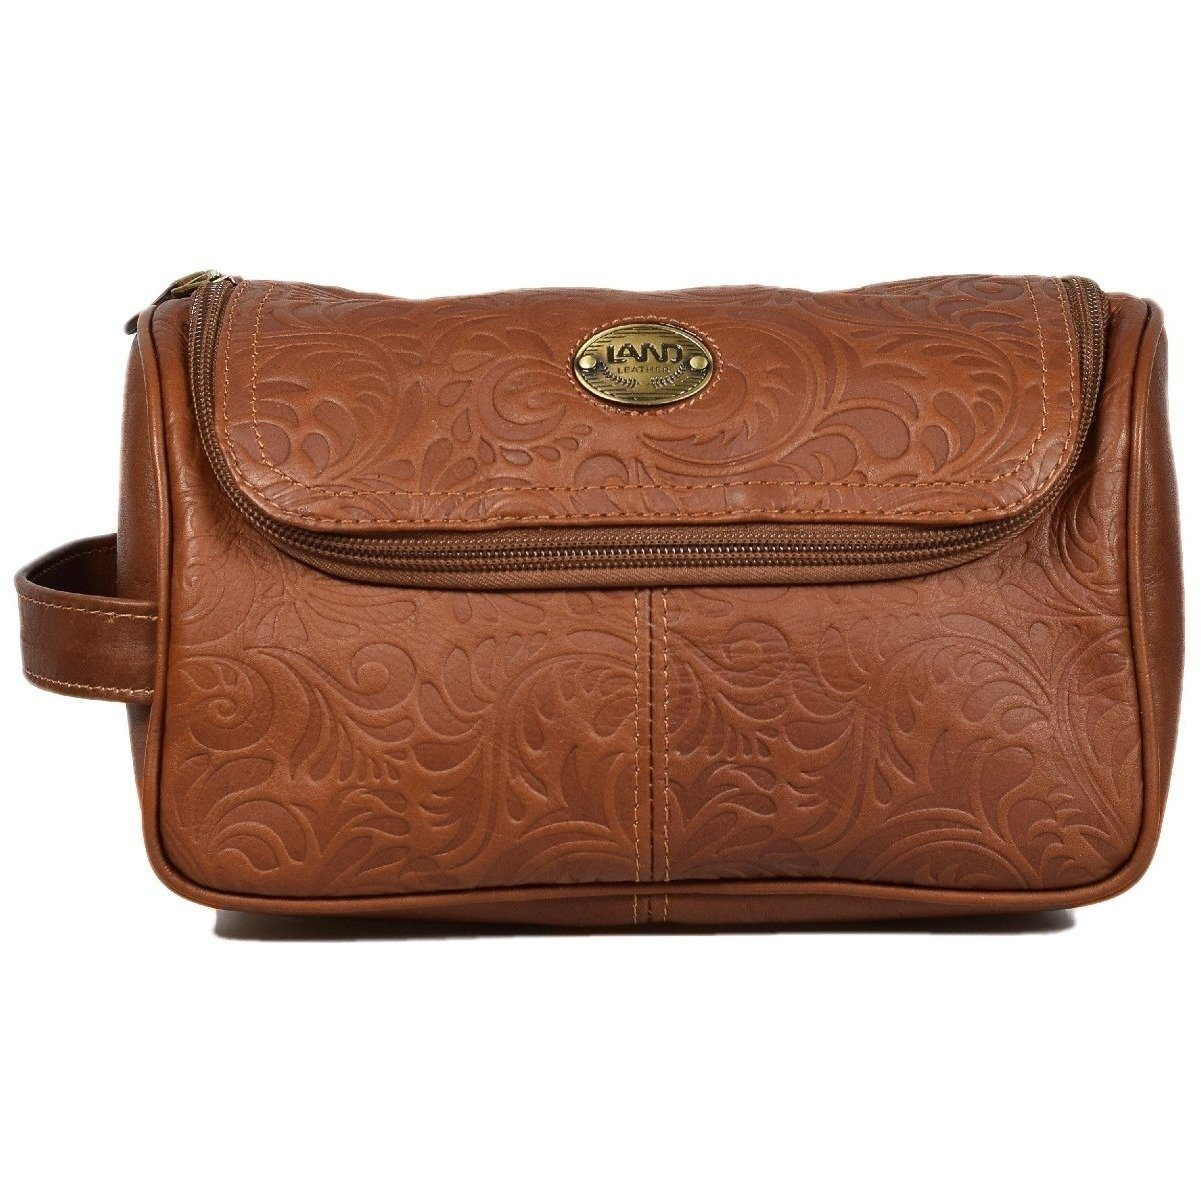 Santa Fe Toiletry Bag